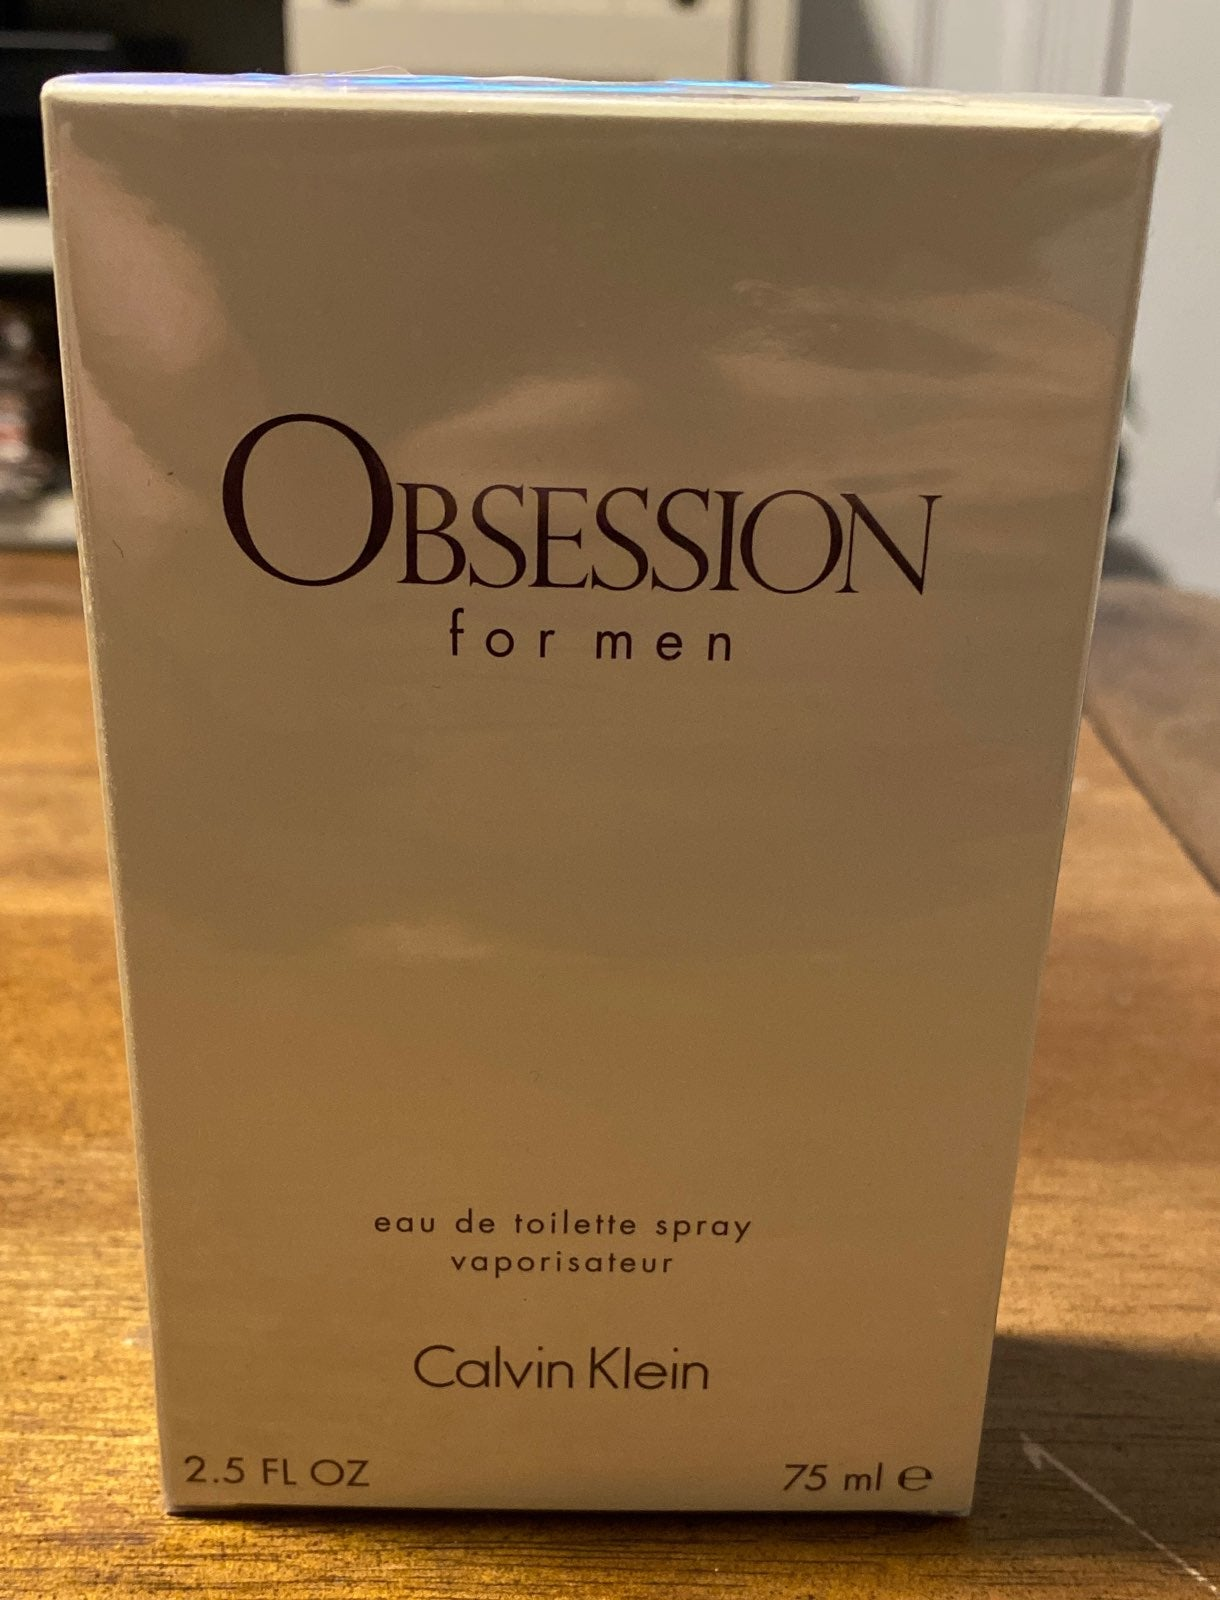 Calvin Klein Obsession 2.5 fluid oz